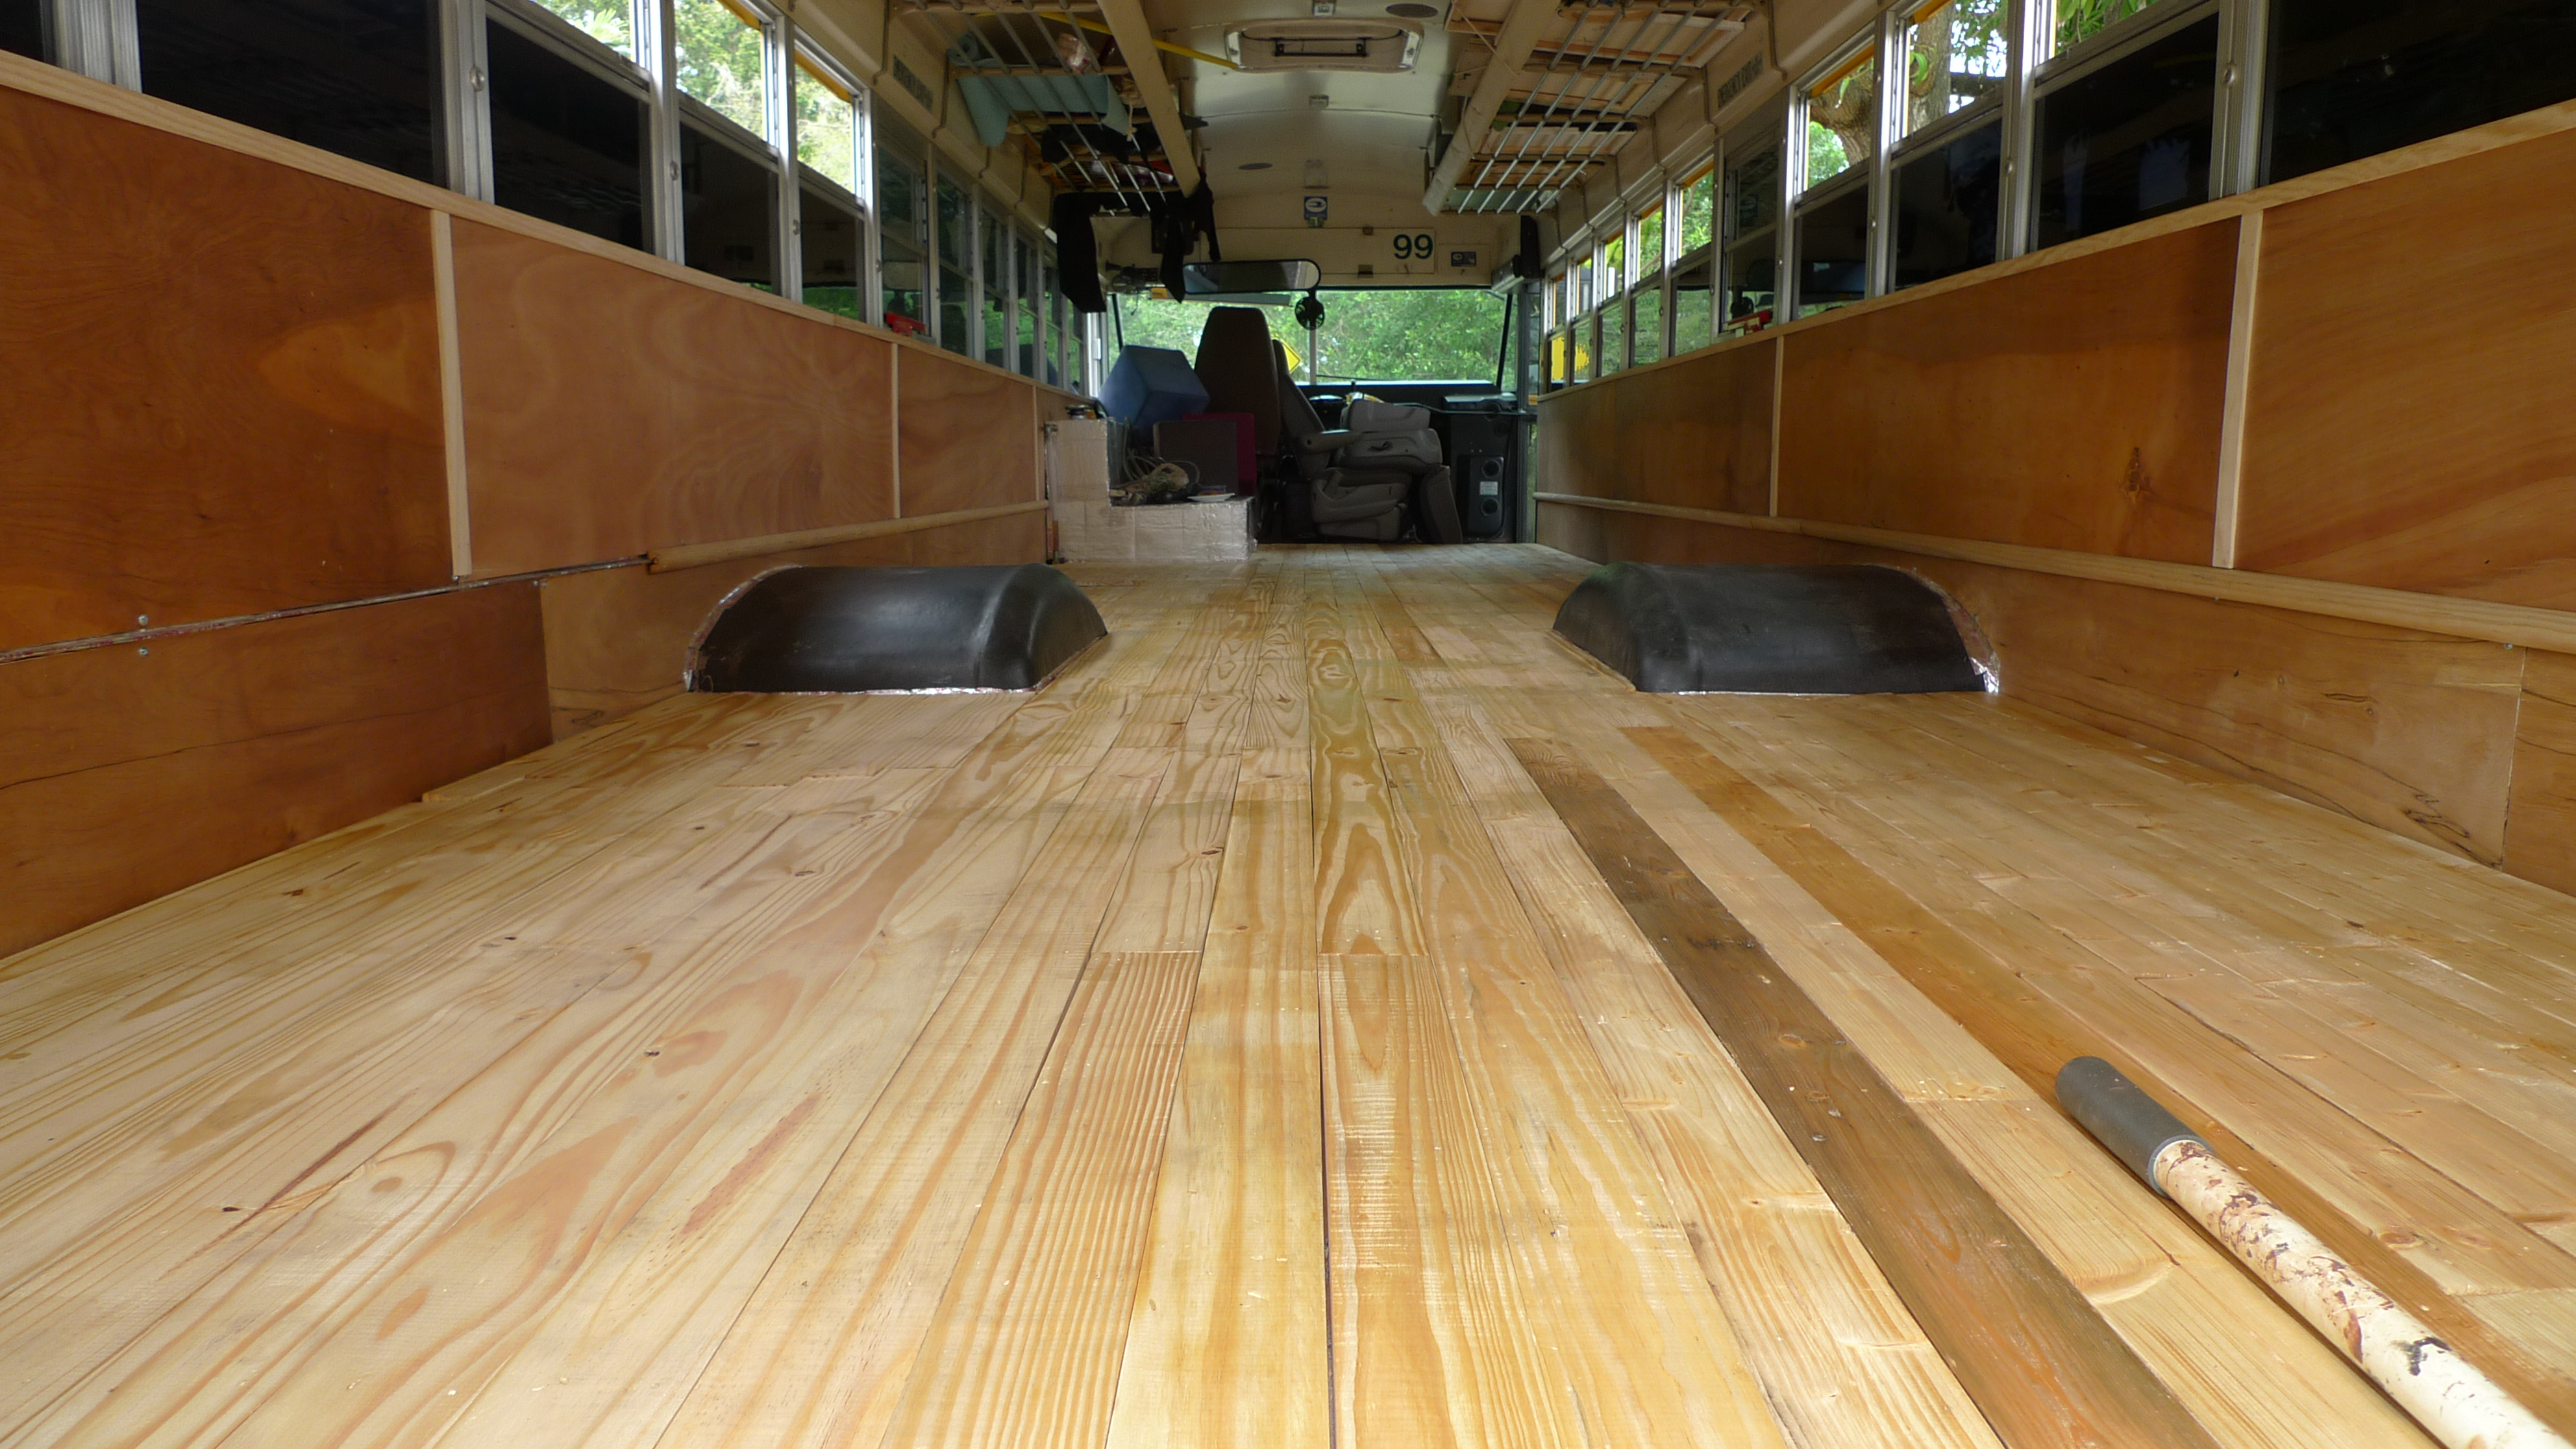 FileEcological Bus Project Floors Insulated And Flooring